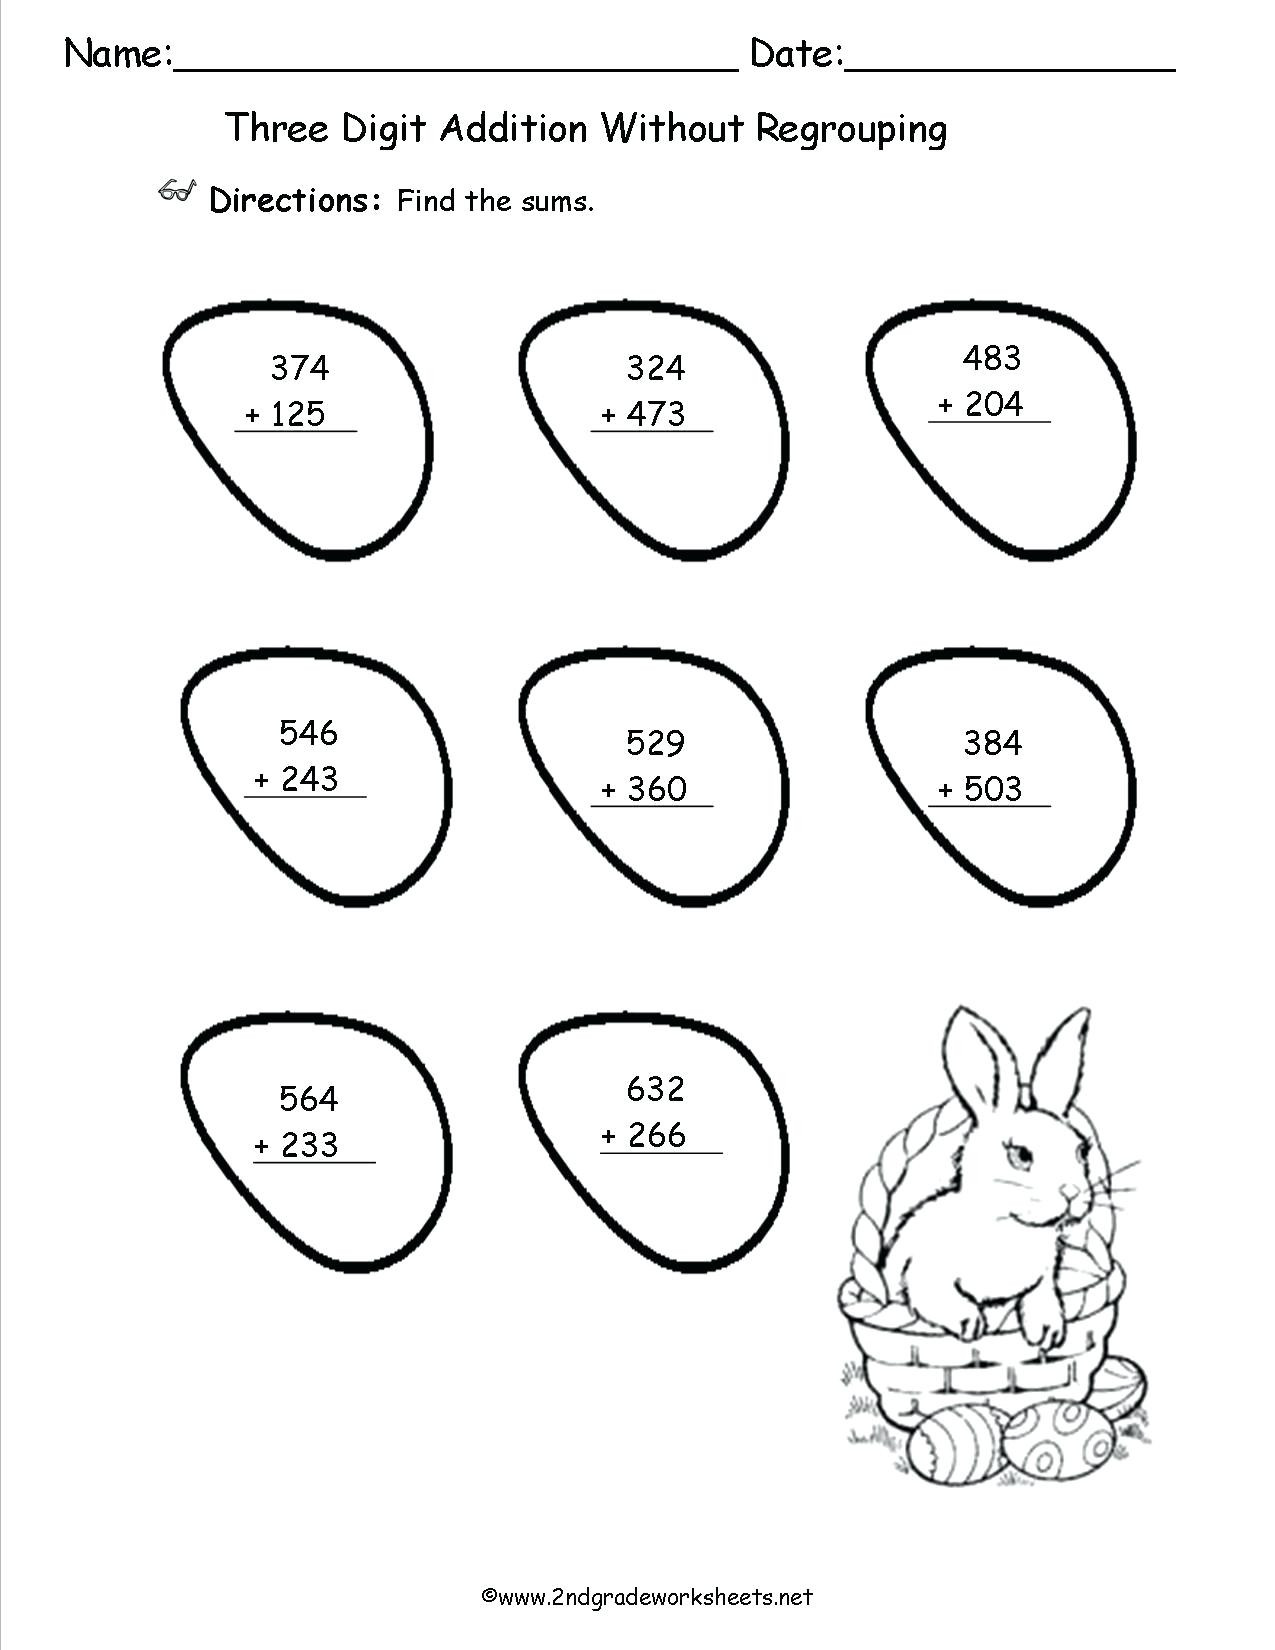 Missing Addend Worksheets 1st Grade Missing Addend Worksheets to Download Missing Addend